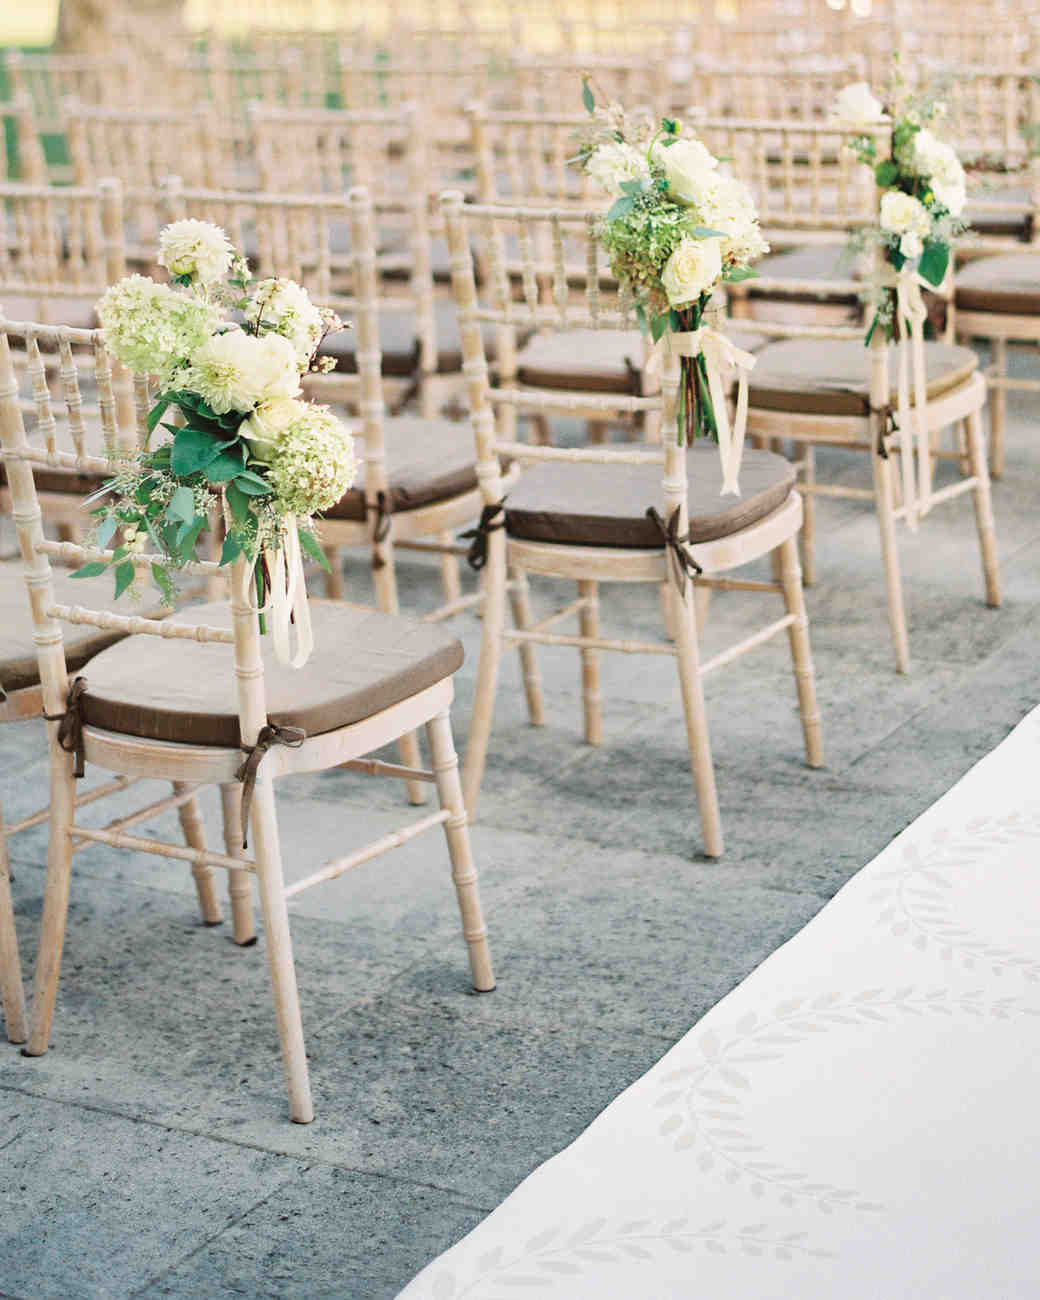 chairs-bouquet-flowers-004781-r1-01-4comp-mwds110148.jpg